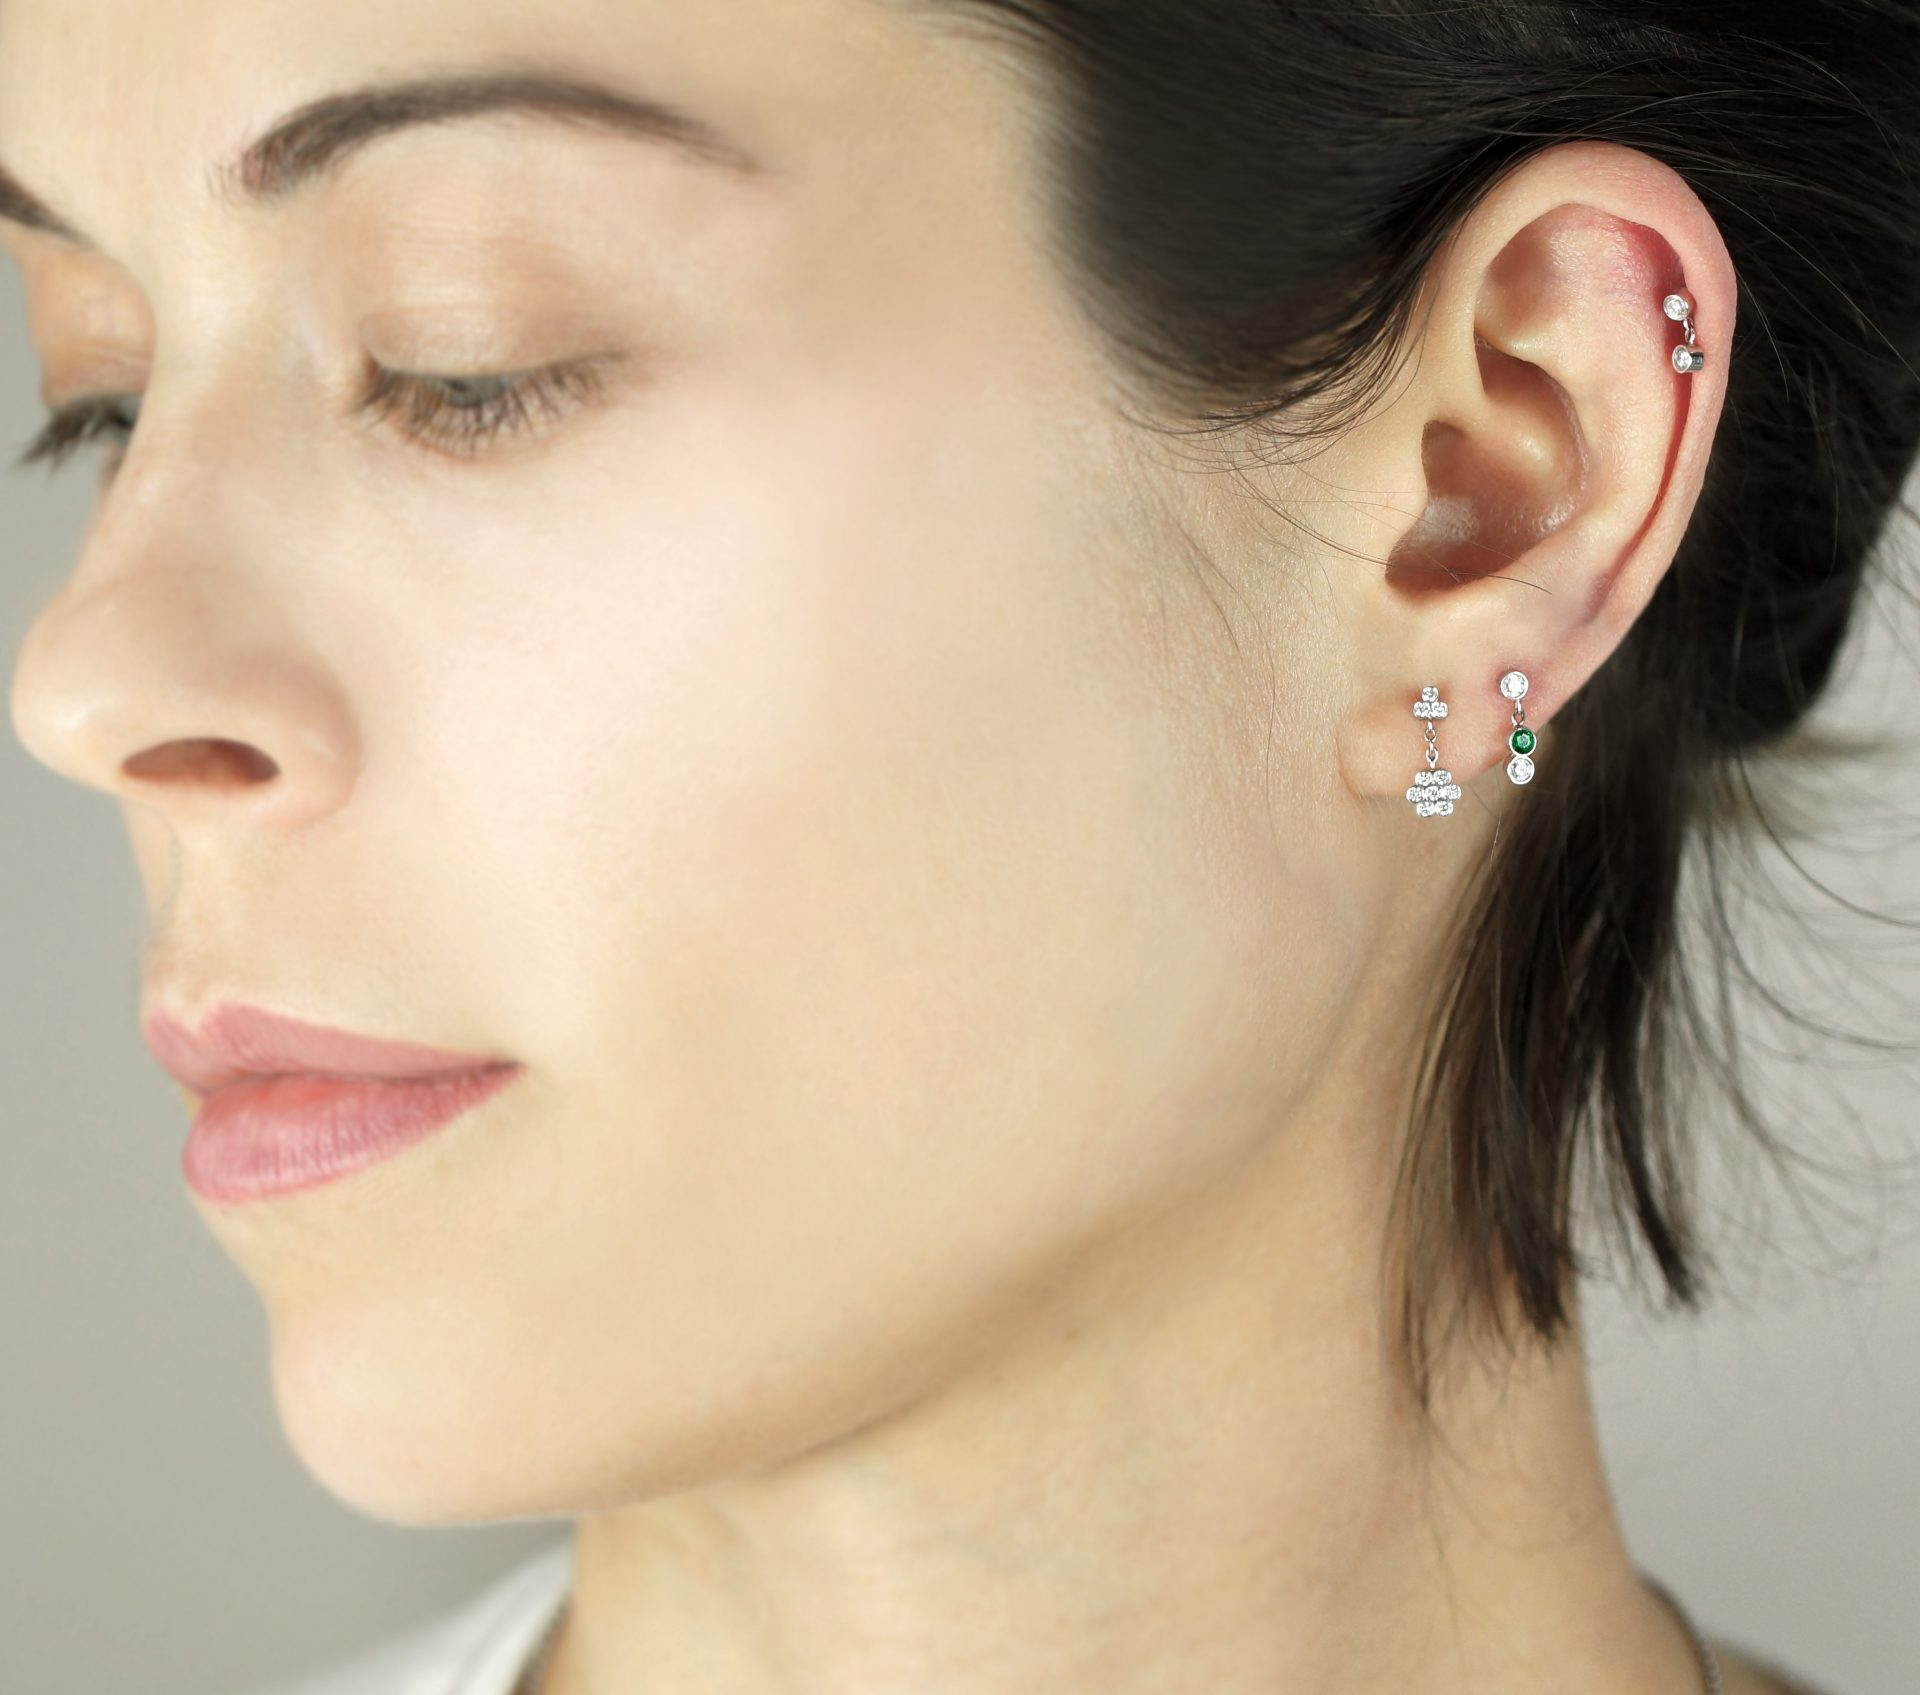 Diamond cartilage piercing earring handmade from 18k white gold, and polished to a mirror shine